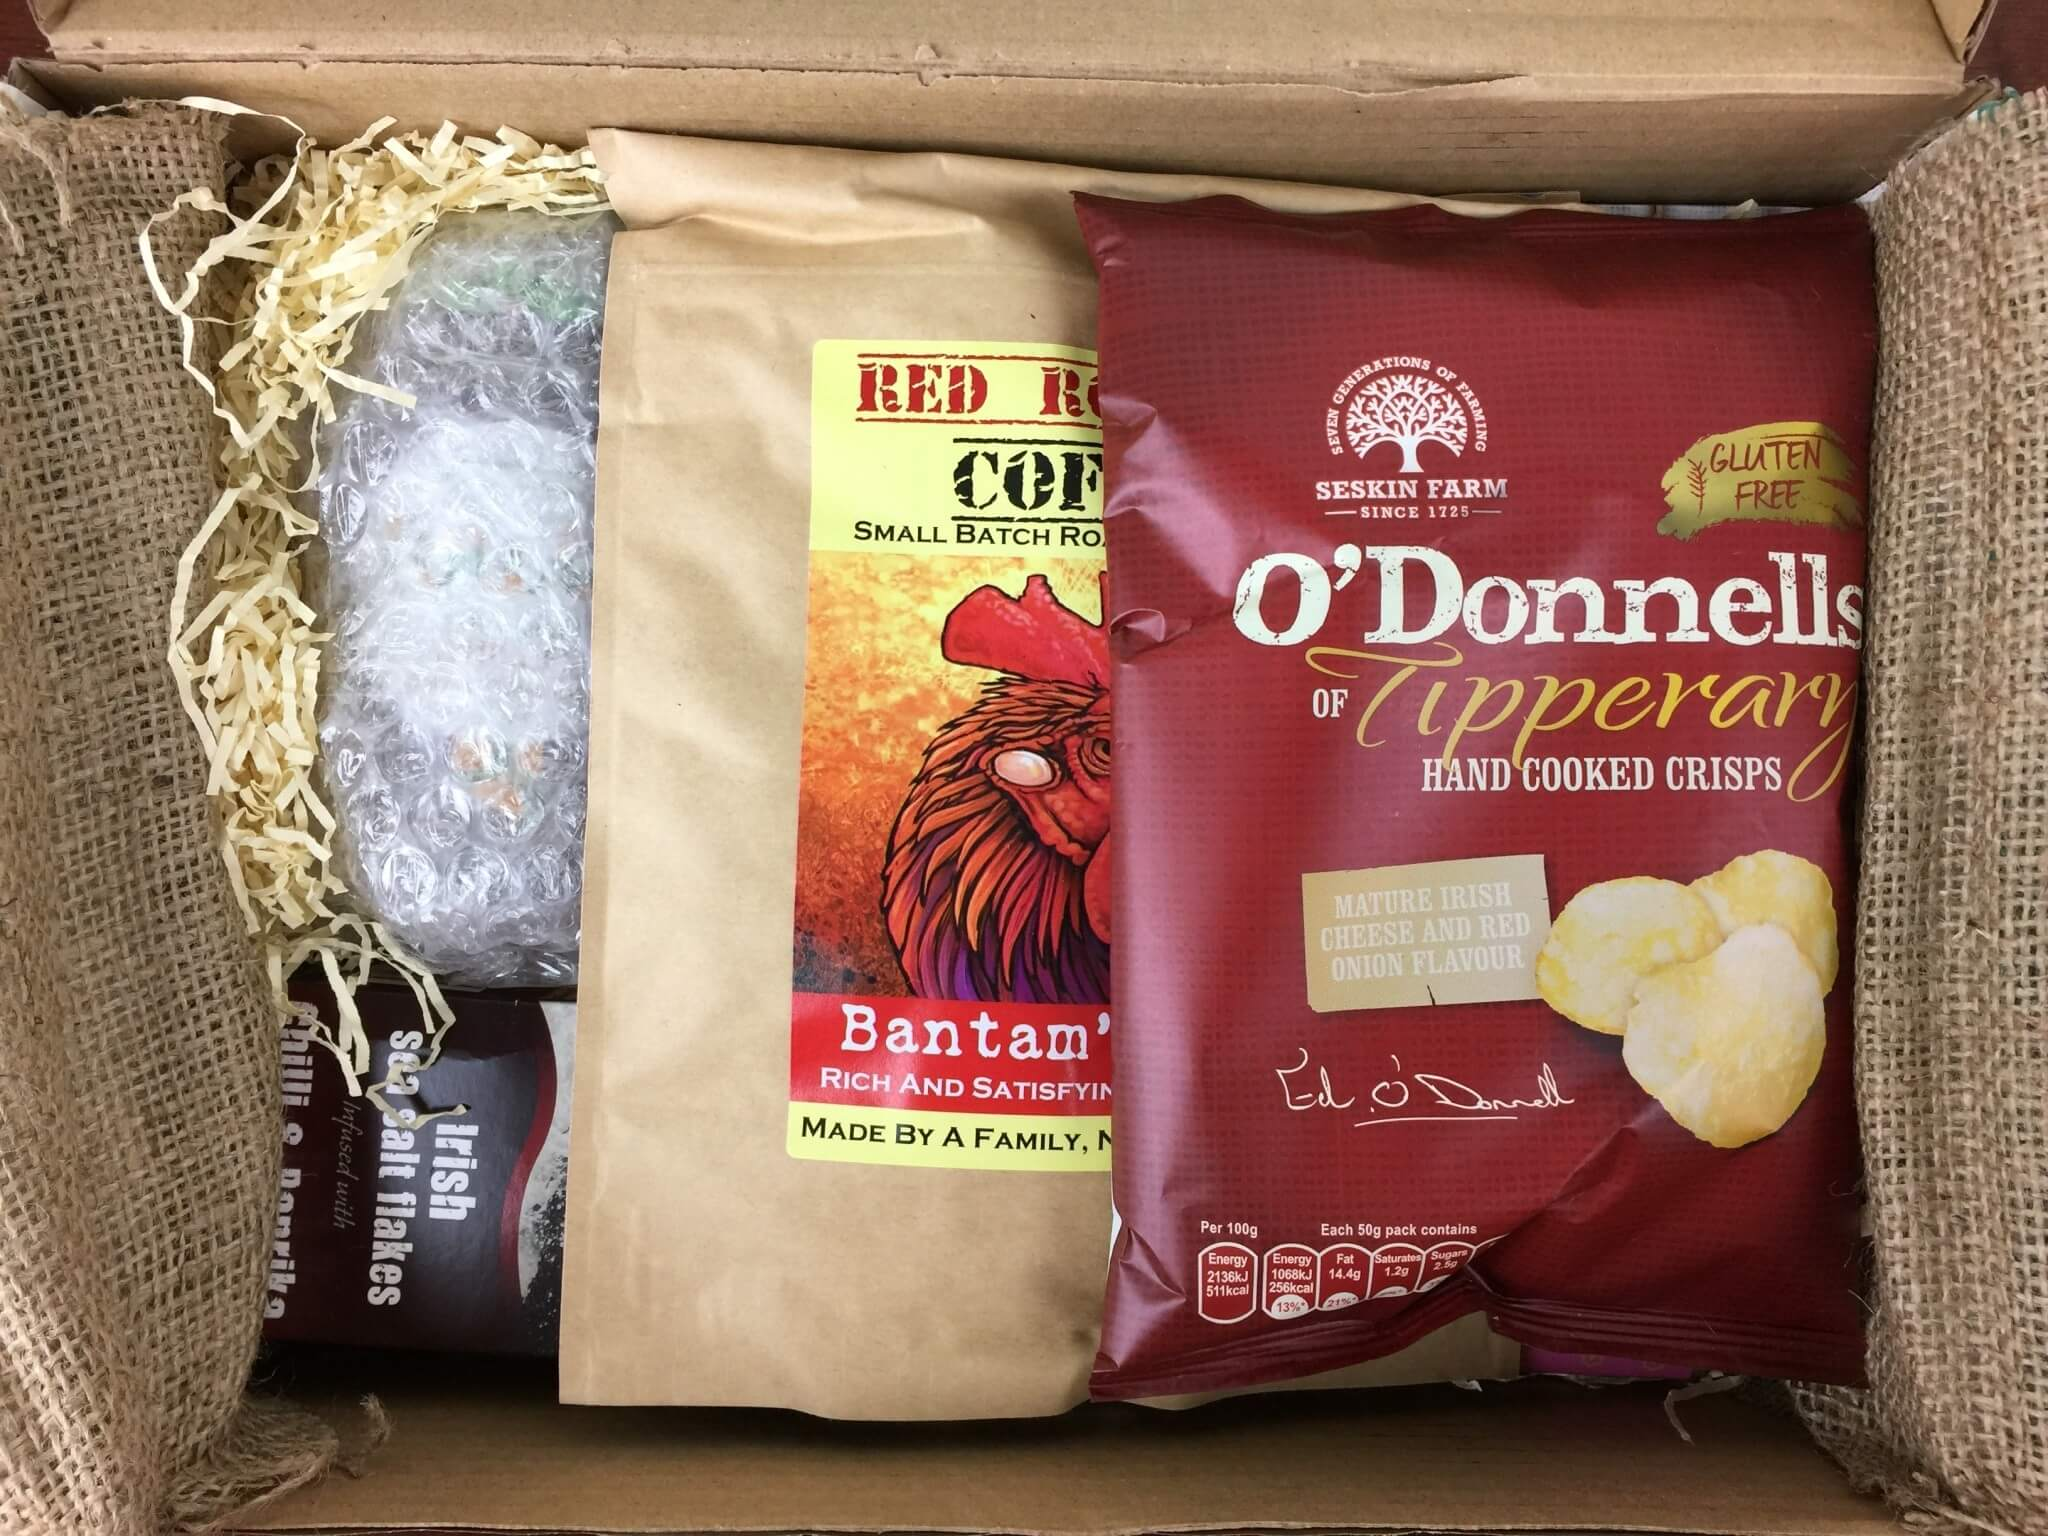 Irish Taste Club Box April 2016 unboxed